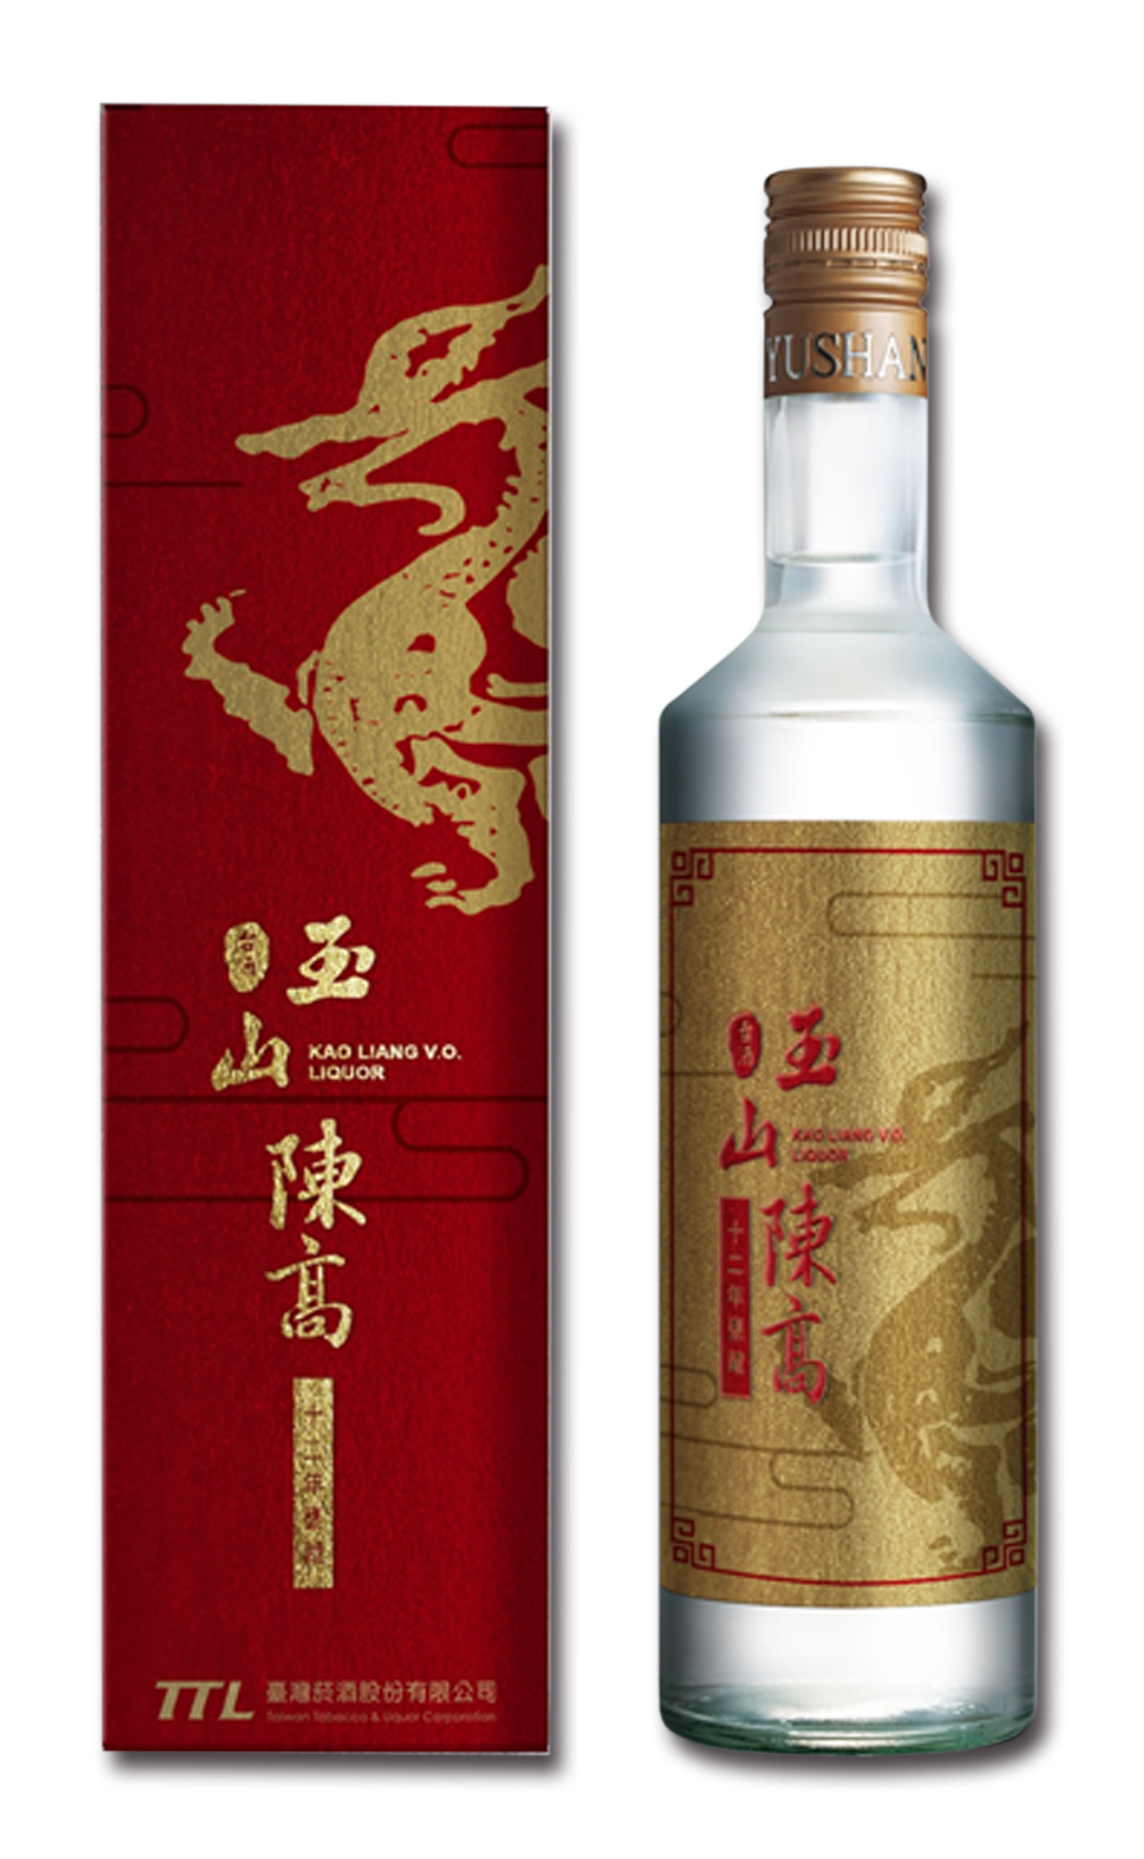 FEATURING PRODUCT IN APRIL-YUSHAN KAOLIANG LIQUOR AGED 12 YEARS(RED KI LIN)